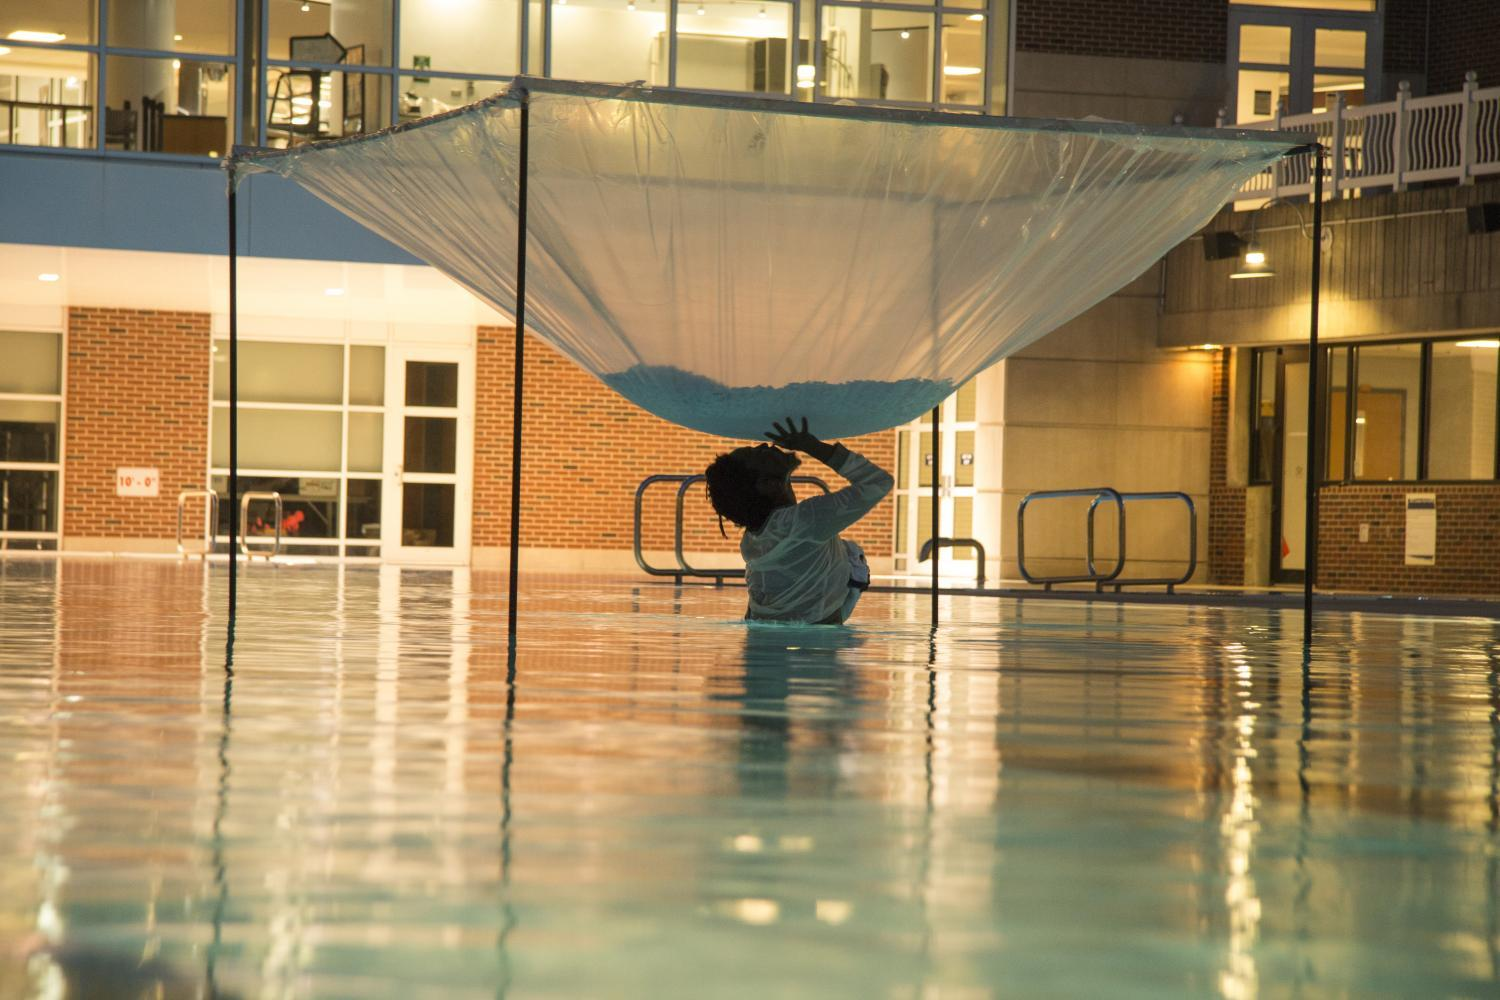 An experimental freezing of a room through metaphorical means, with Autumn Knight, performance at University of Illinois Activities and Recreation Center, April 19, 2017.